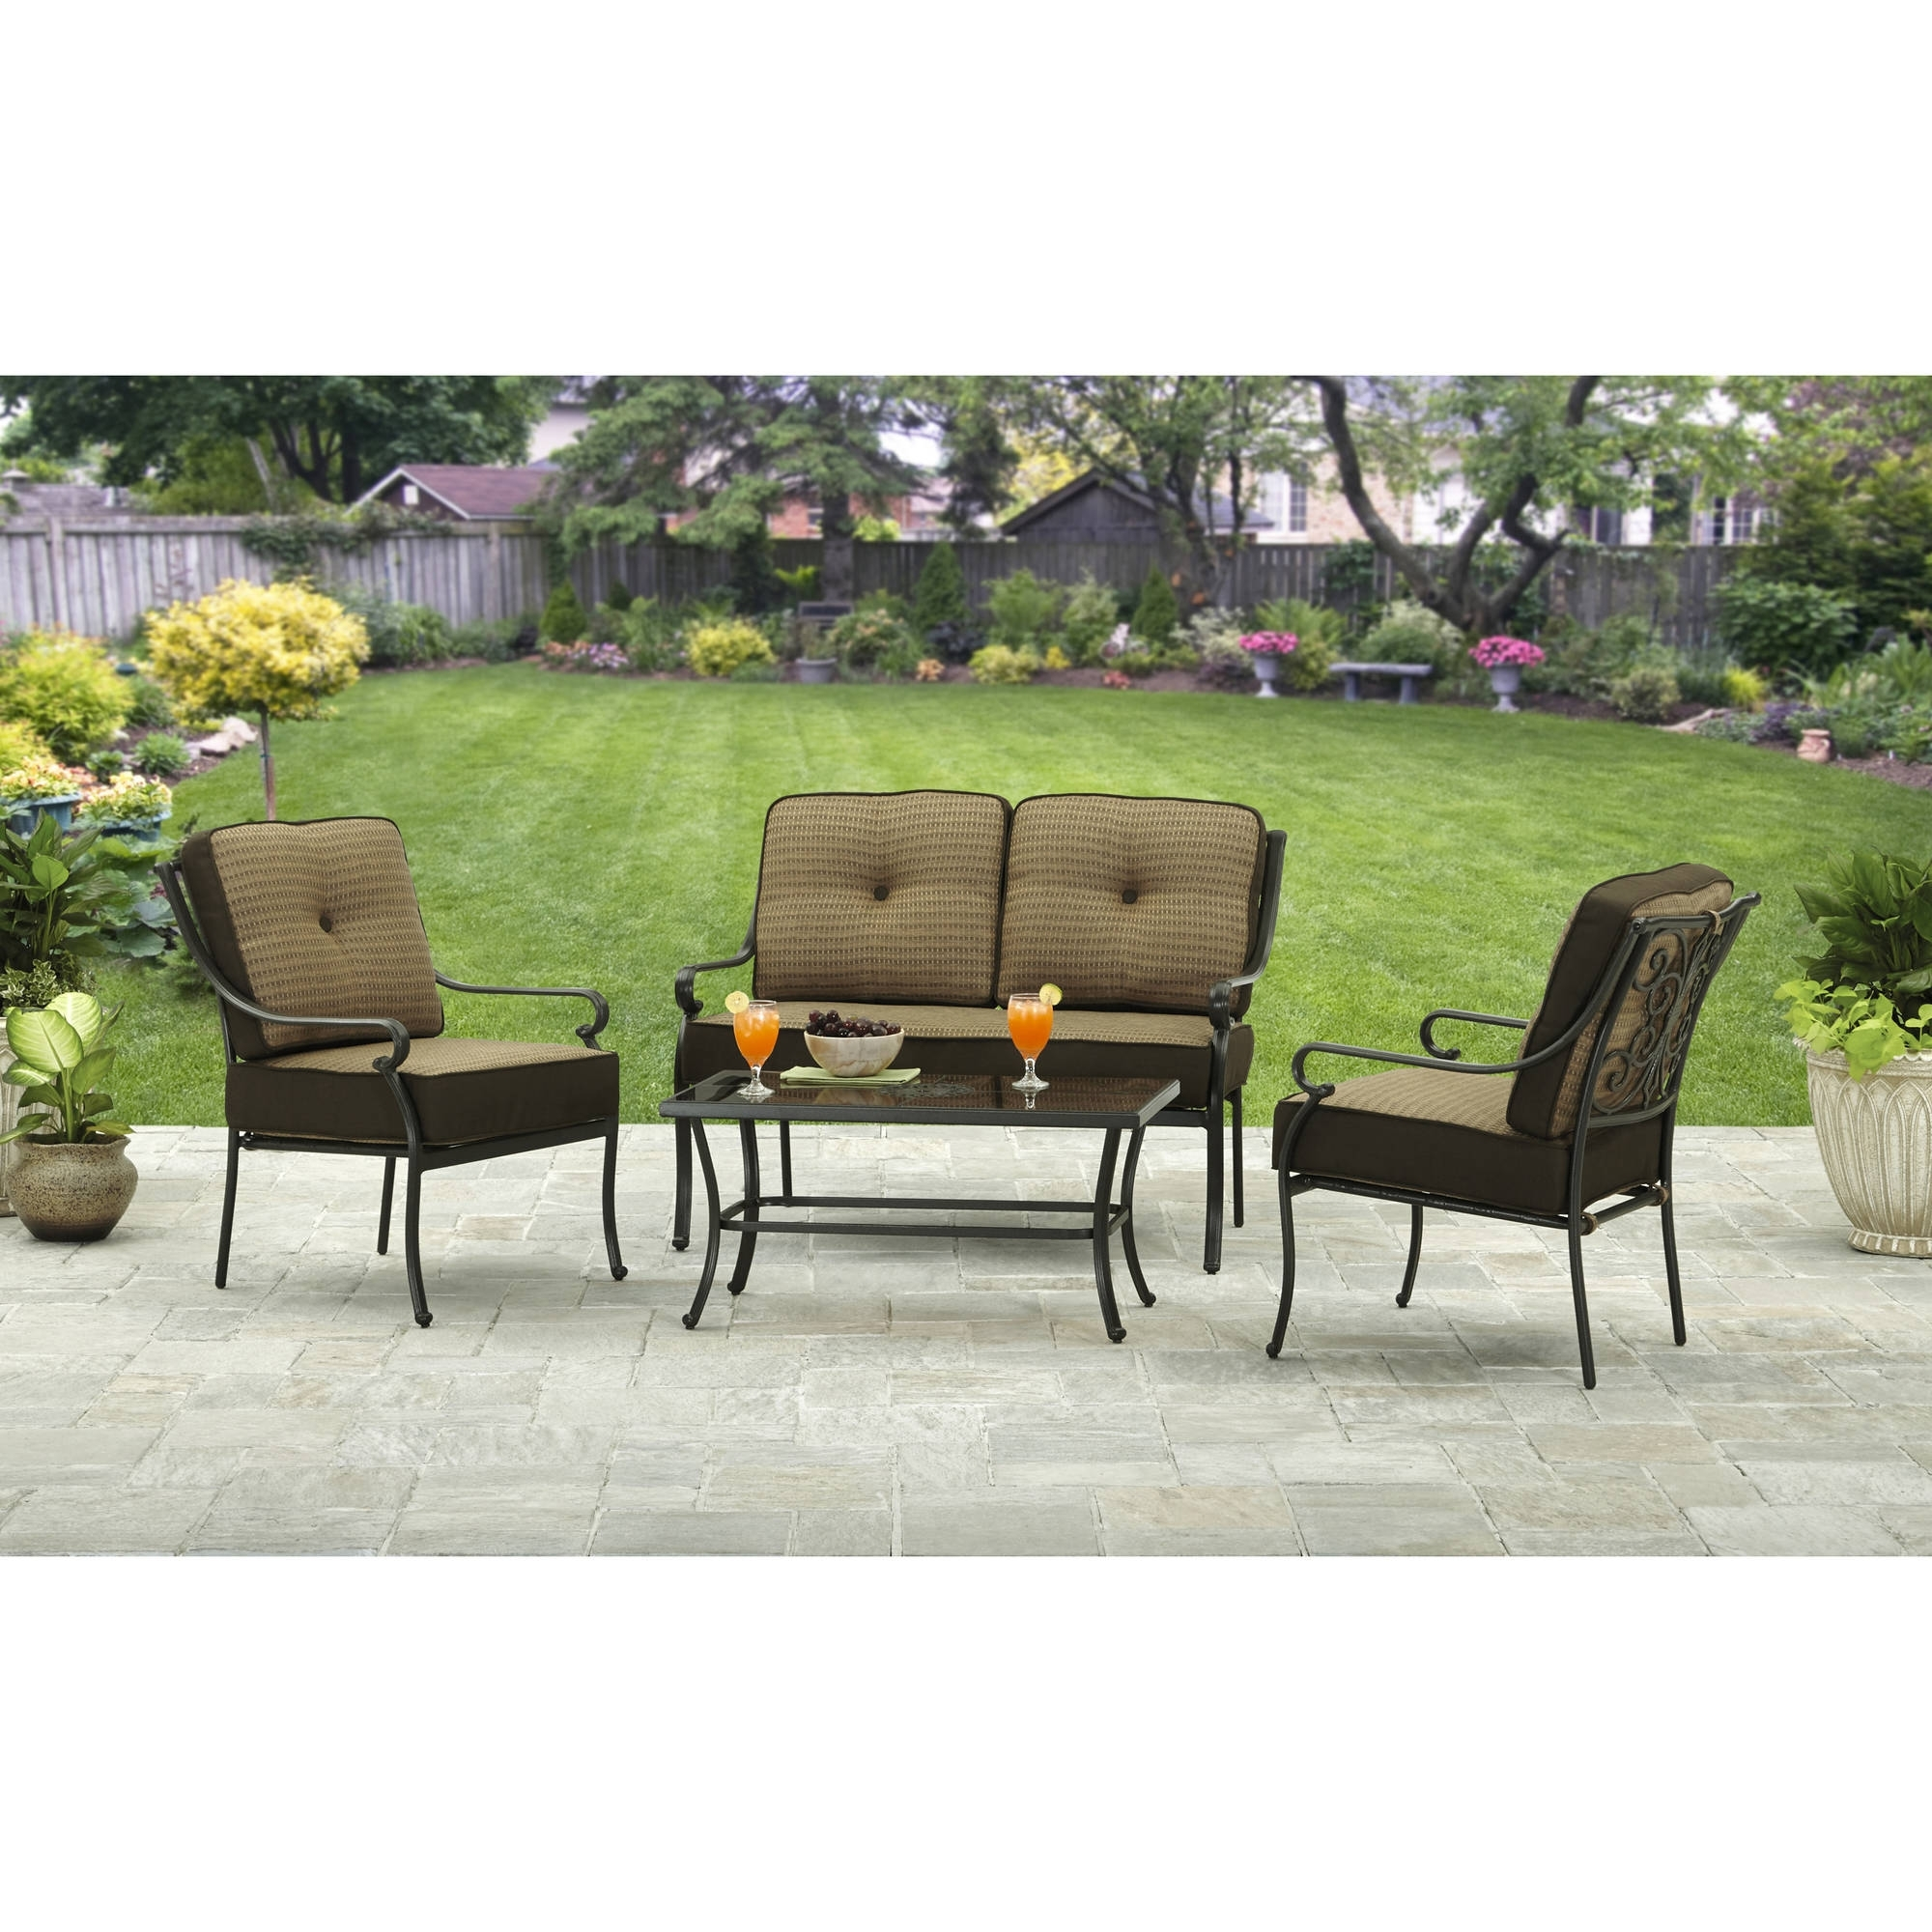 Widely Used Better Homes And Gardens Bailey Ridge 4 Piece Outdoor Conversation Pertaining To 4 Piece Patio Conversation Sets (View 20 of 20)